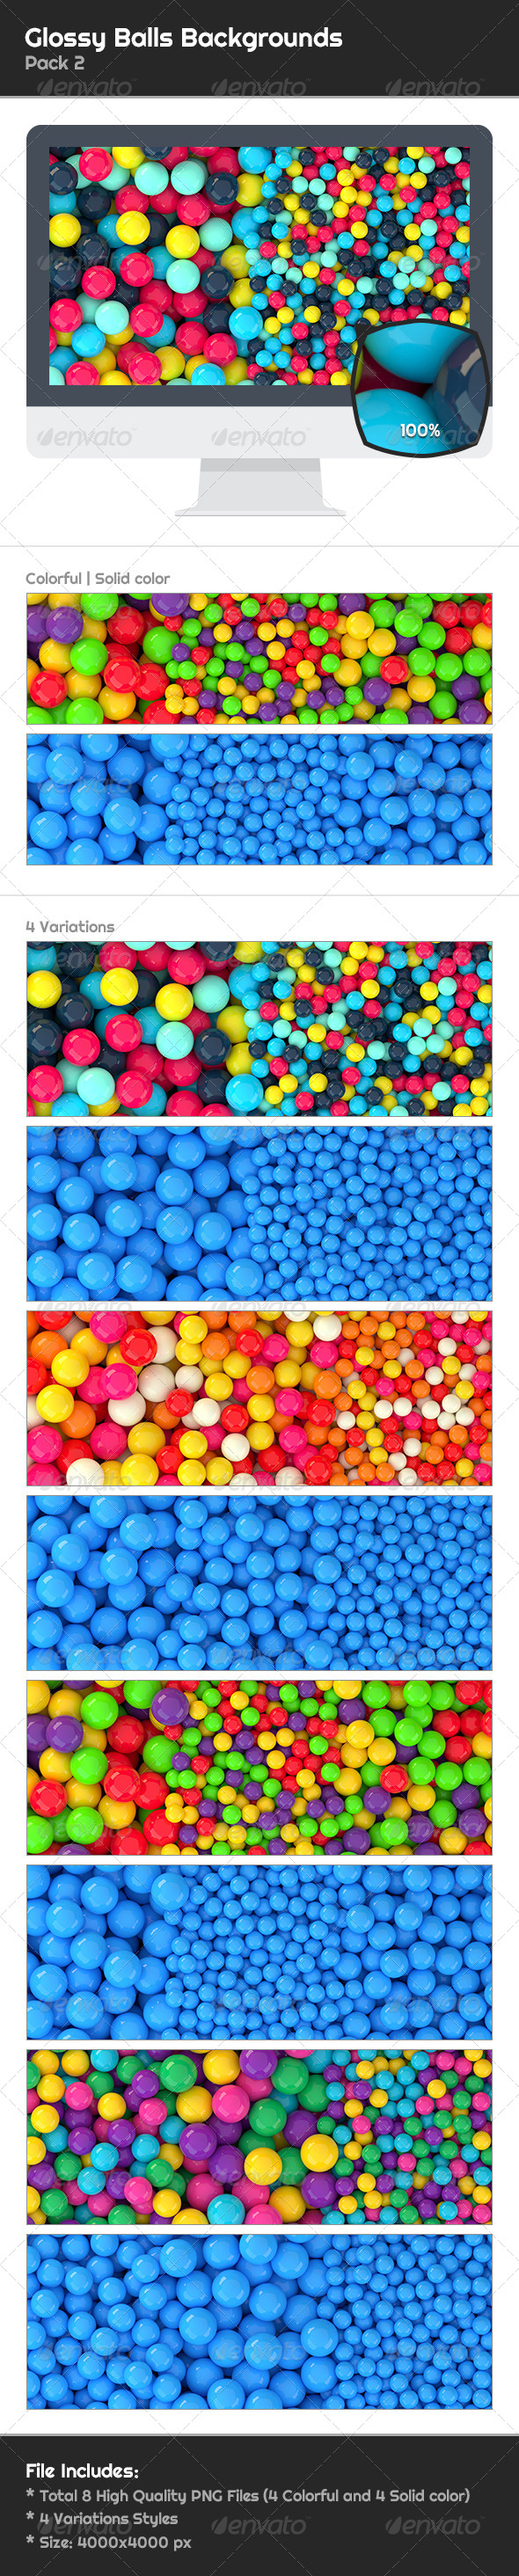 GraphicRiver 8 Glossy Balls Backgrounds Pack 2 6654201